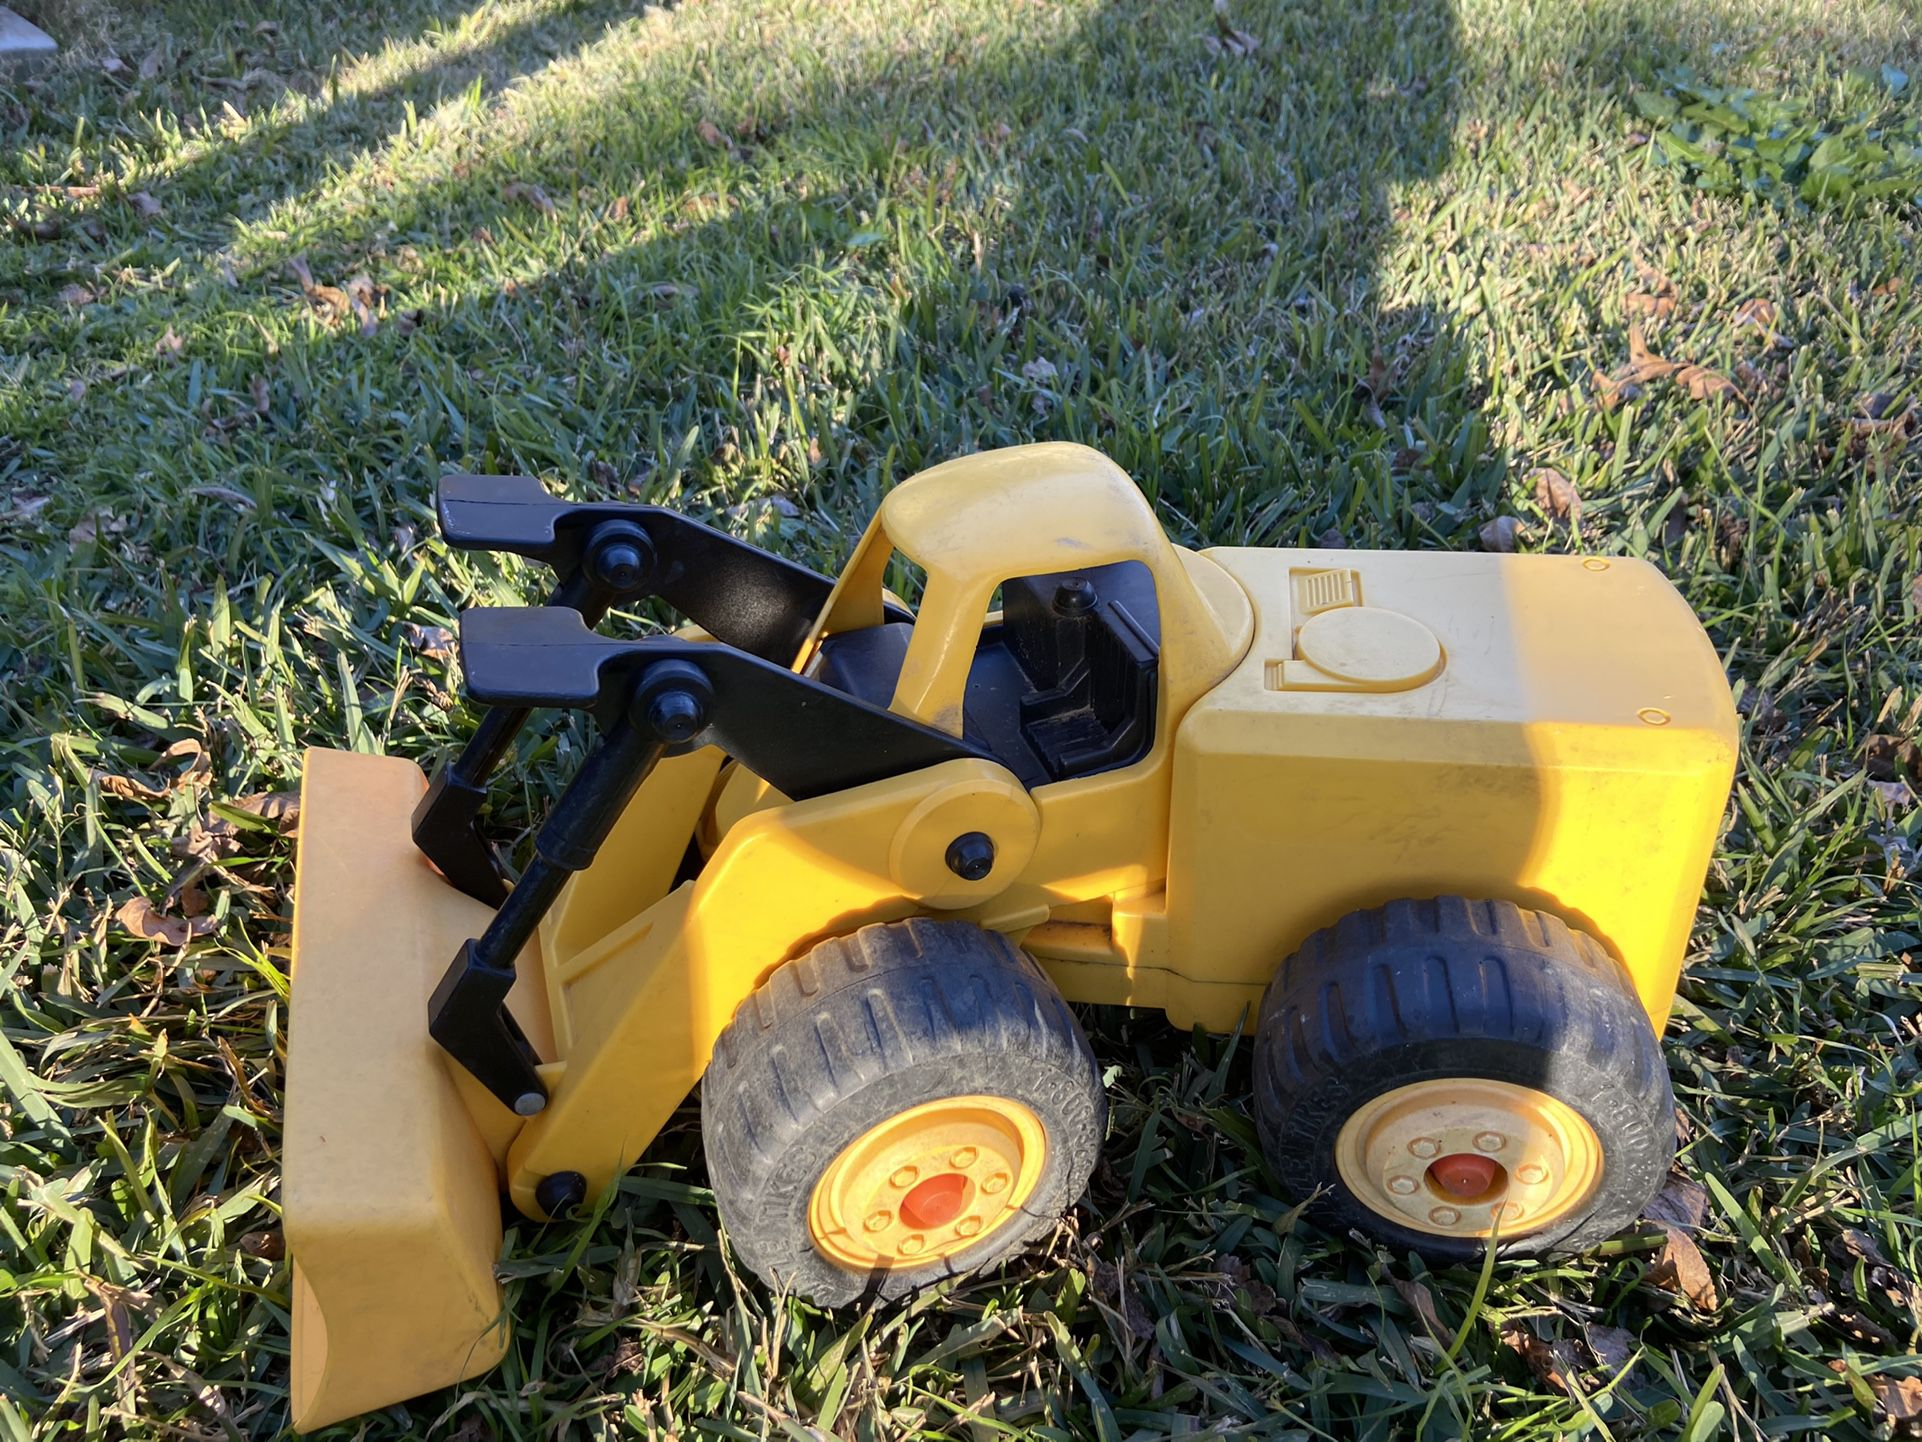 Little Tykes Front Loader